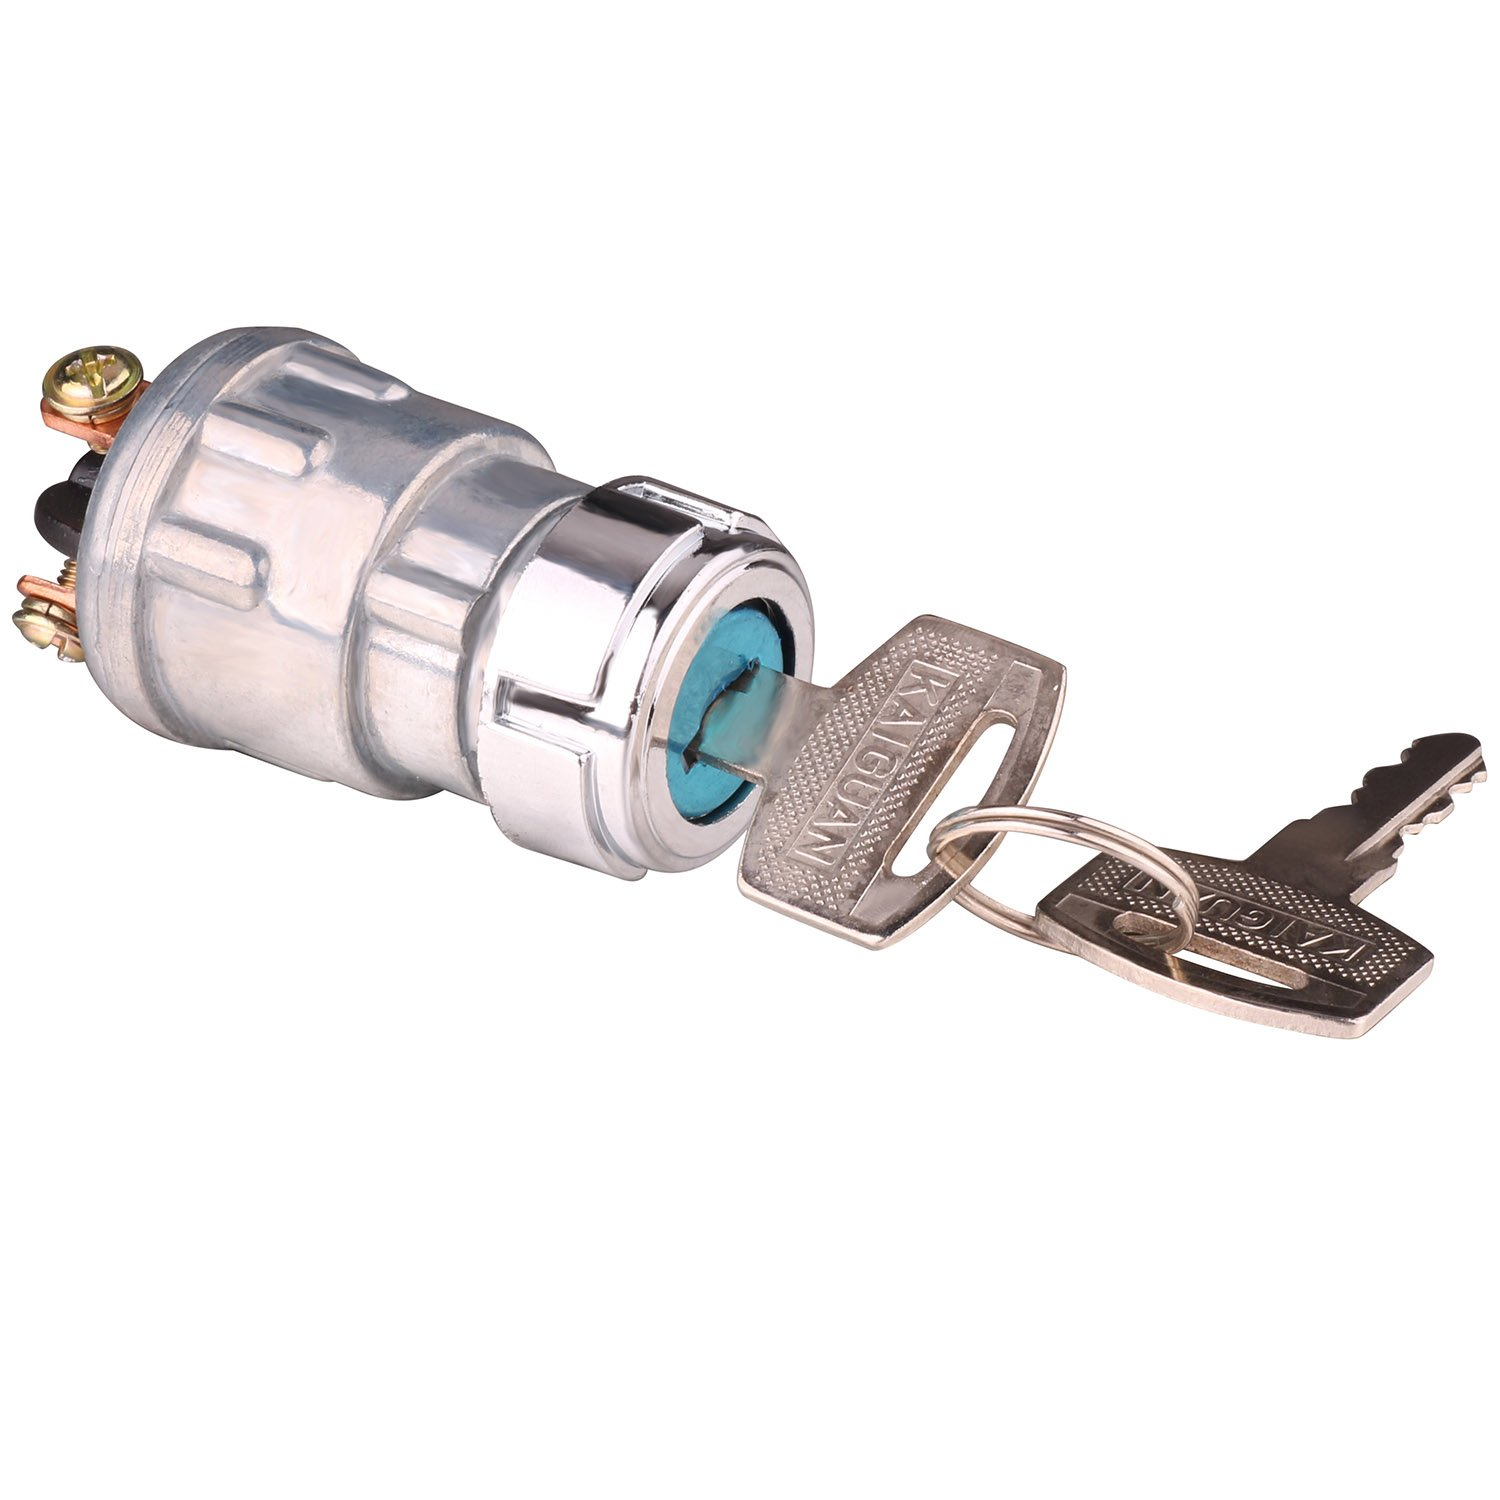 ignition switch with key, lenmumu universal 3 wire engine starter switch  for car, motorcycle, tractor, forklift, truck, scooter, trailer,